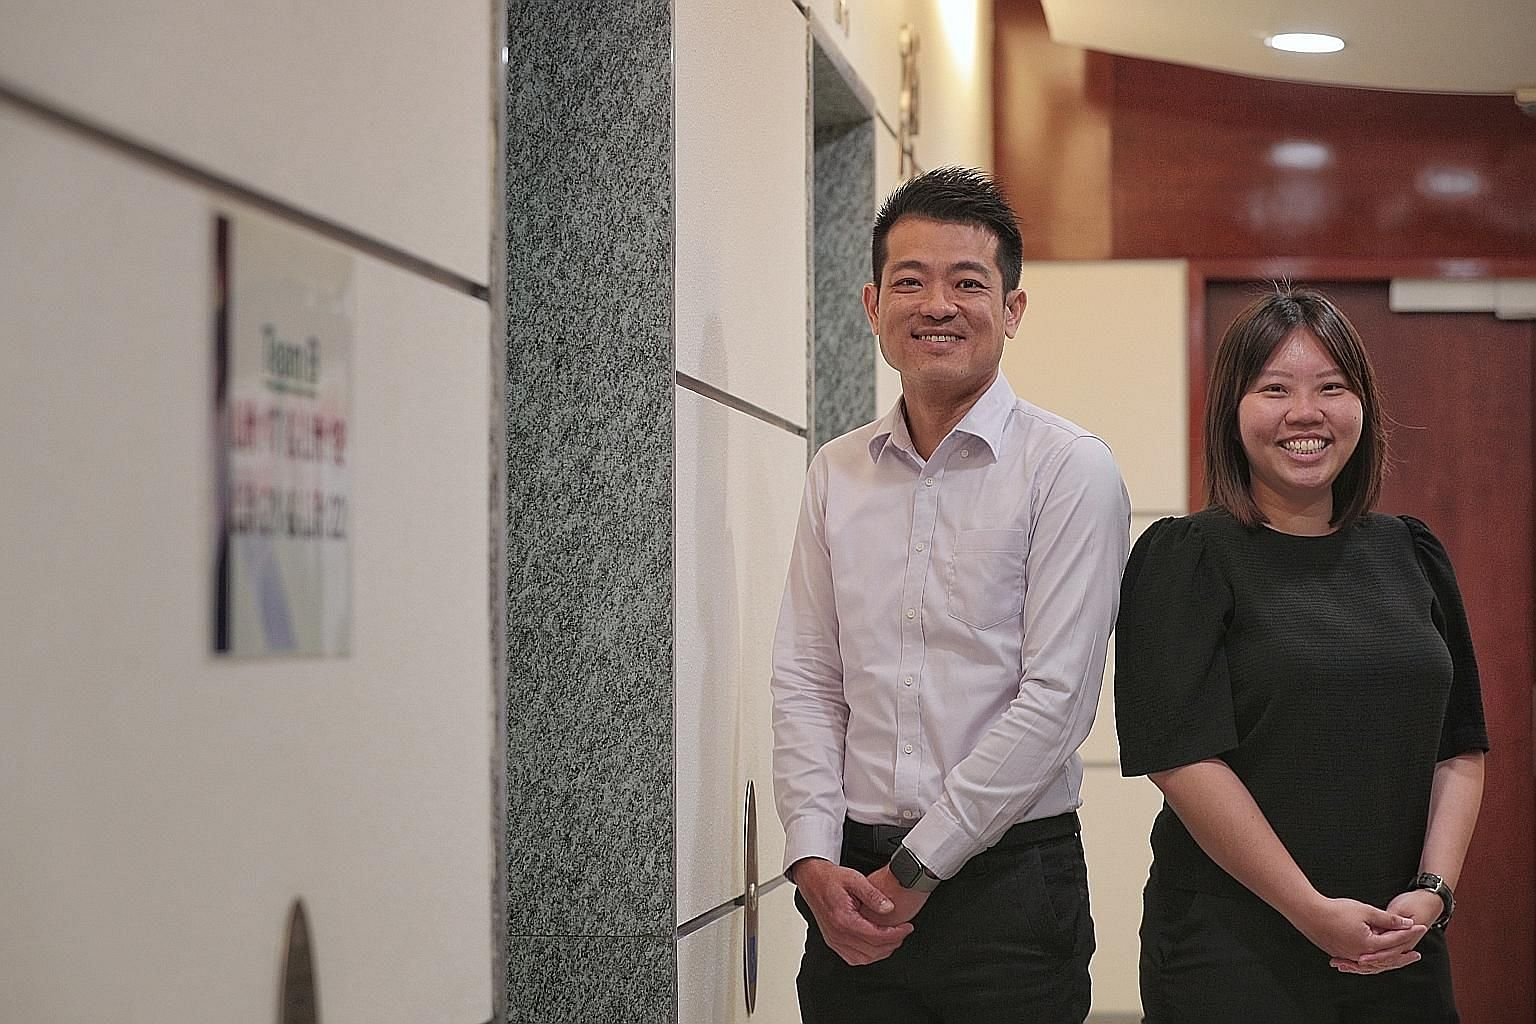 Assistant Superintendent of Police Johnny Lim and analyst He Minghui are part of the team that solved the mystery of how the Grace Assembly of God coronavirus cluster came about. ST PHOTO: JASON QUAH